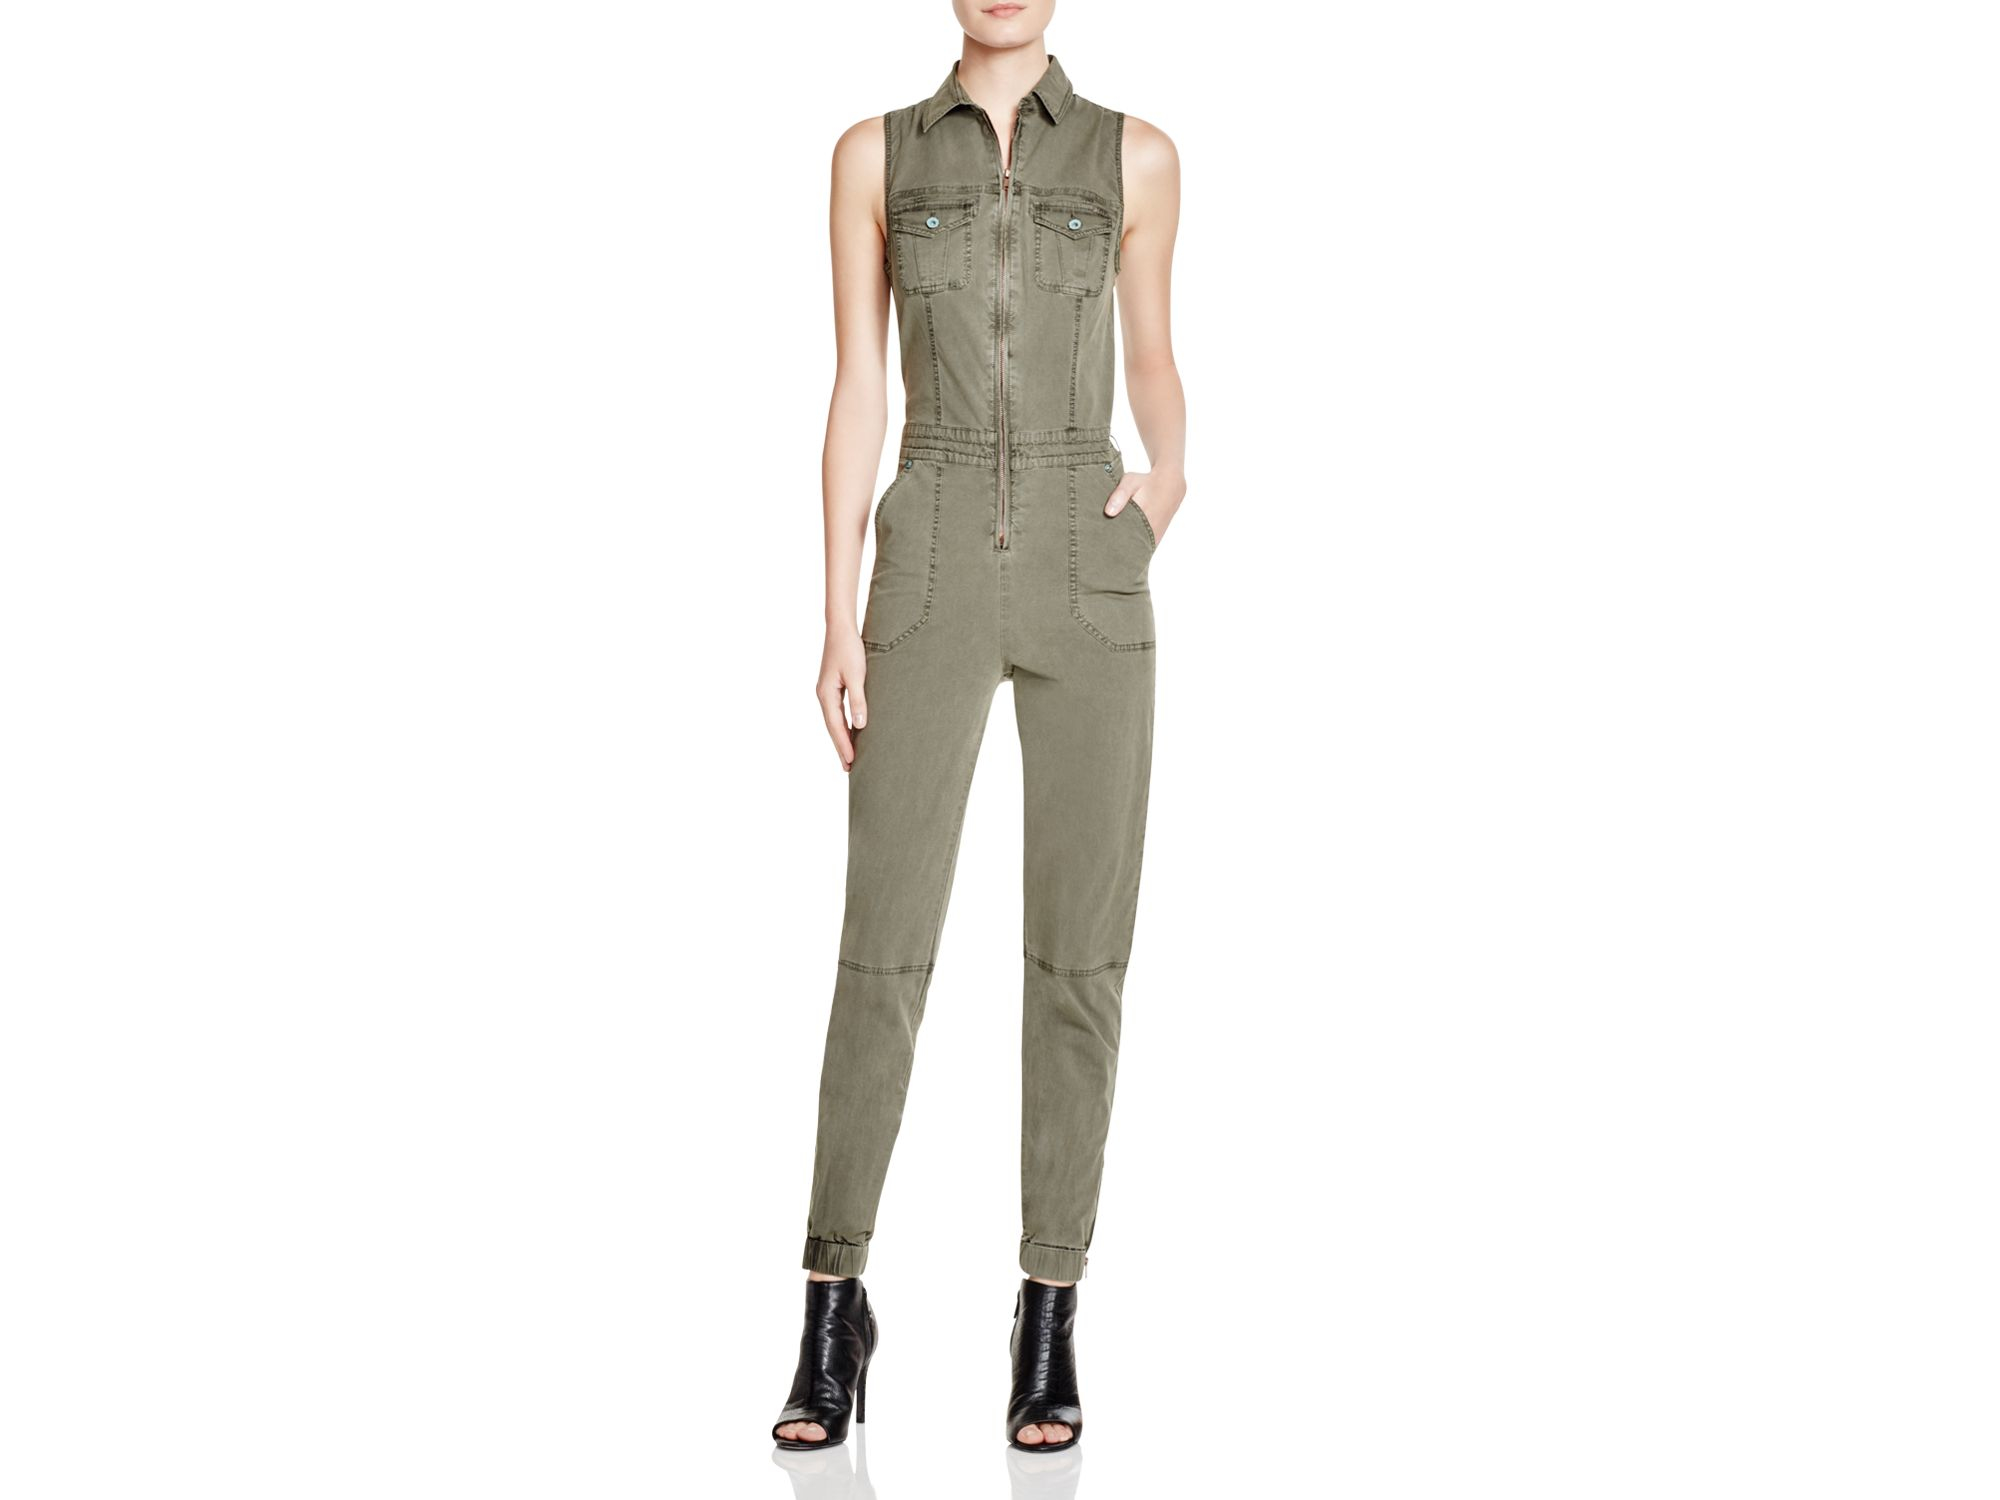 d2d1a5967d4 Lyst - Guess Military Cargo Jumpsuit in Green